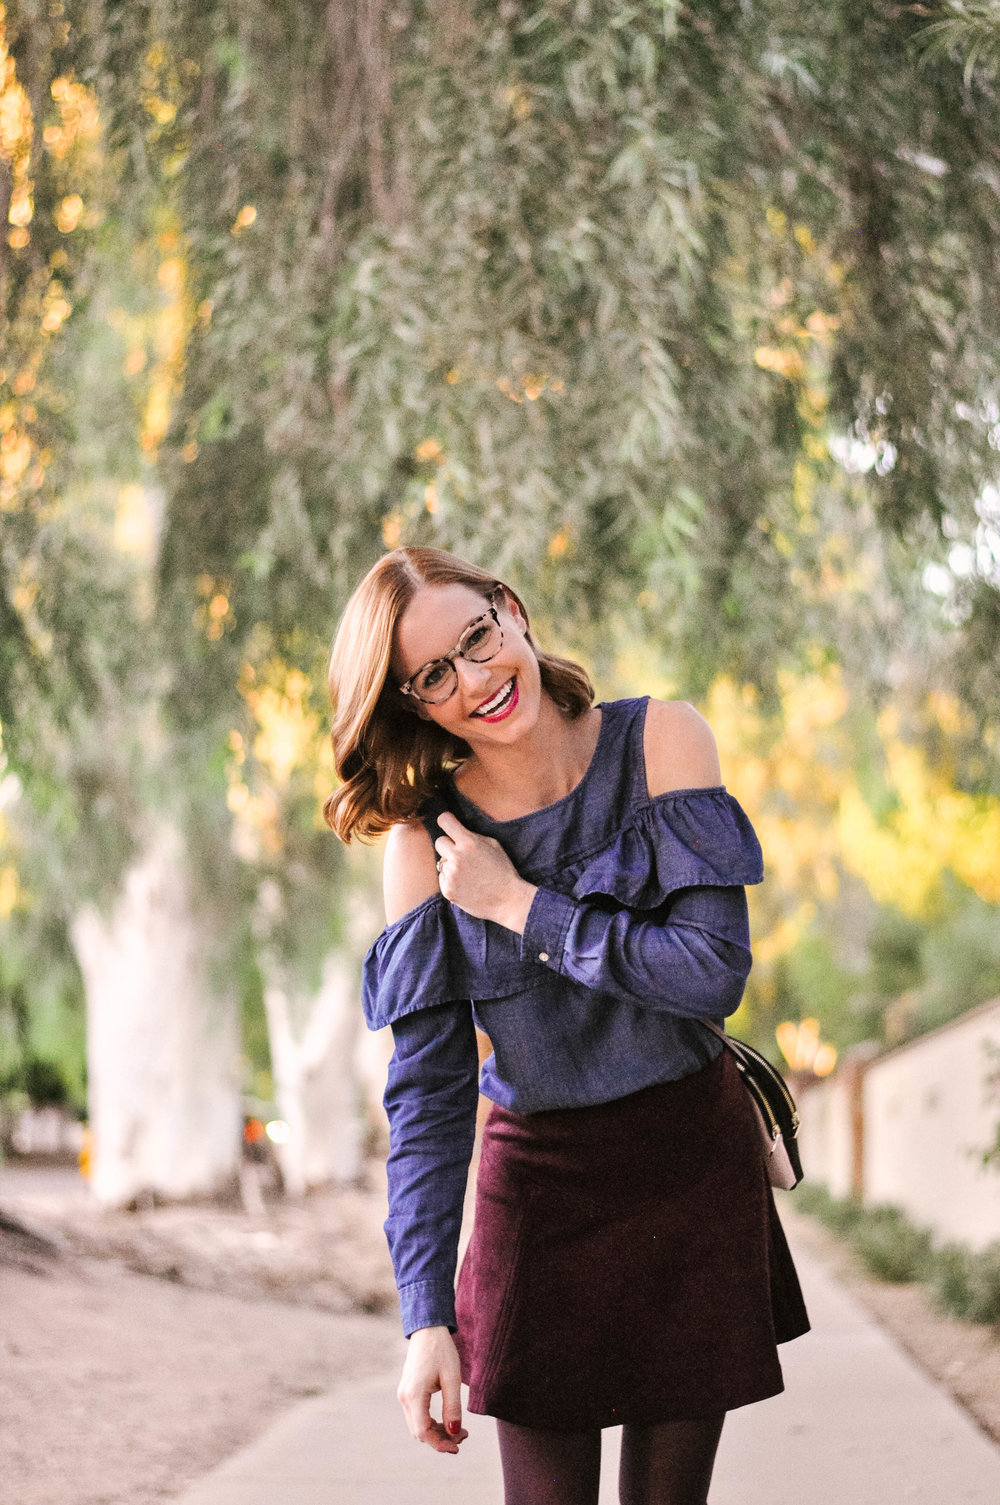 The perfect fall outfit with burgundy Jack by BB Dakota skirt and chambray Loft top